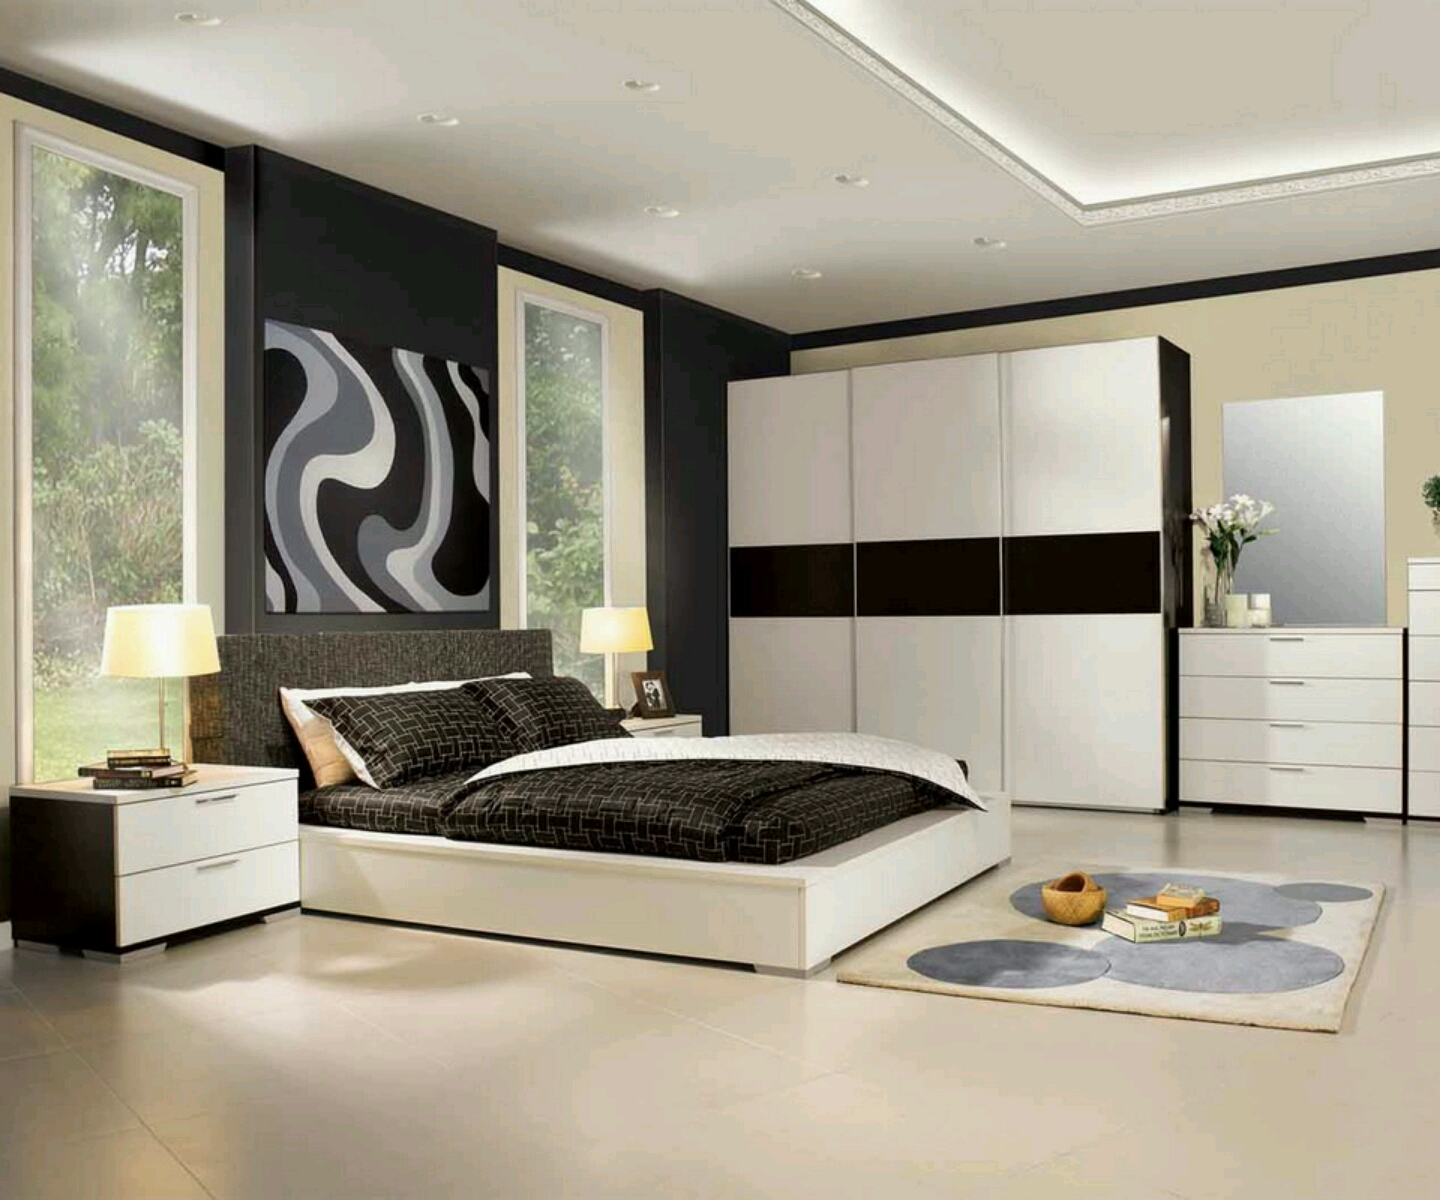 Bedroom design furniture Photo - 1